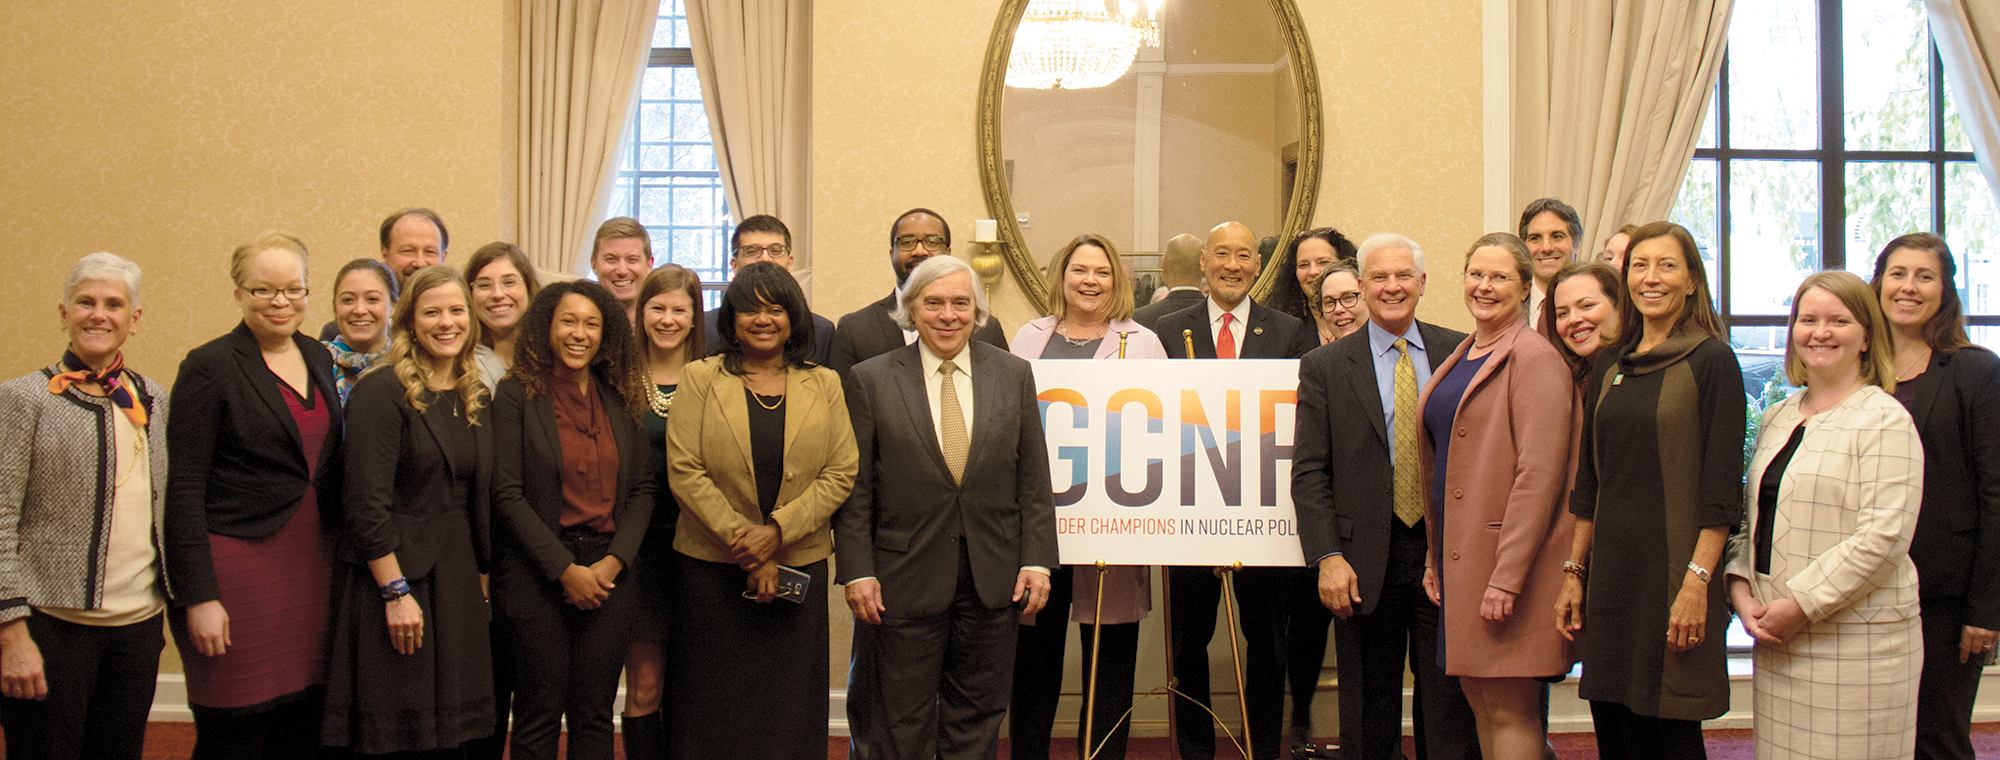 Inaugural class of Gender Champions at the launch of Gender Champions in Nuclear Policy in November 2018, Washington, DC